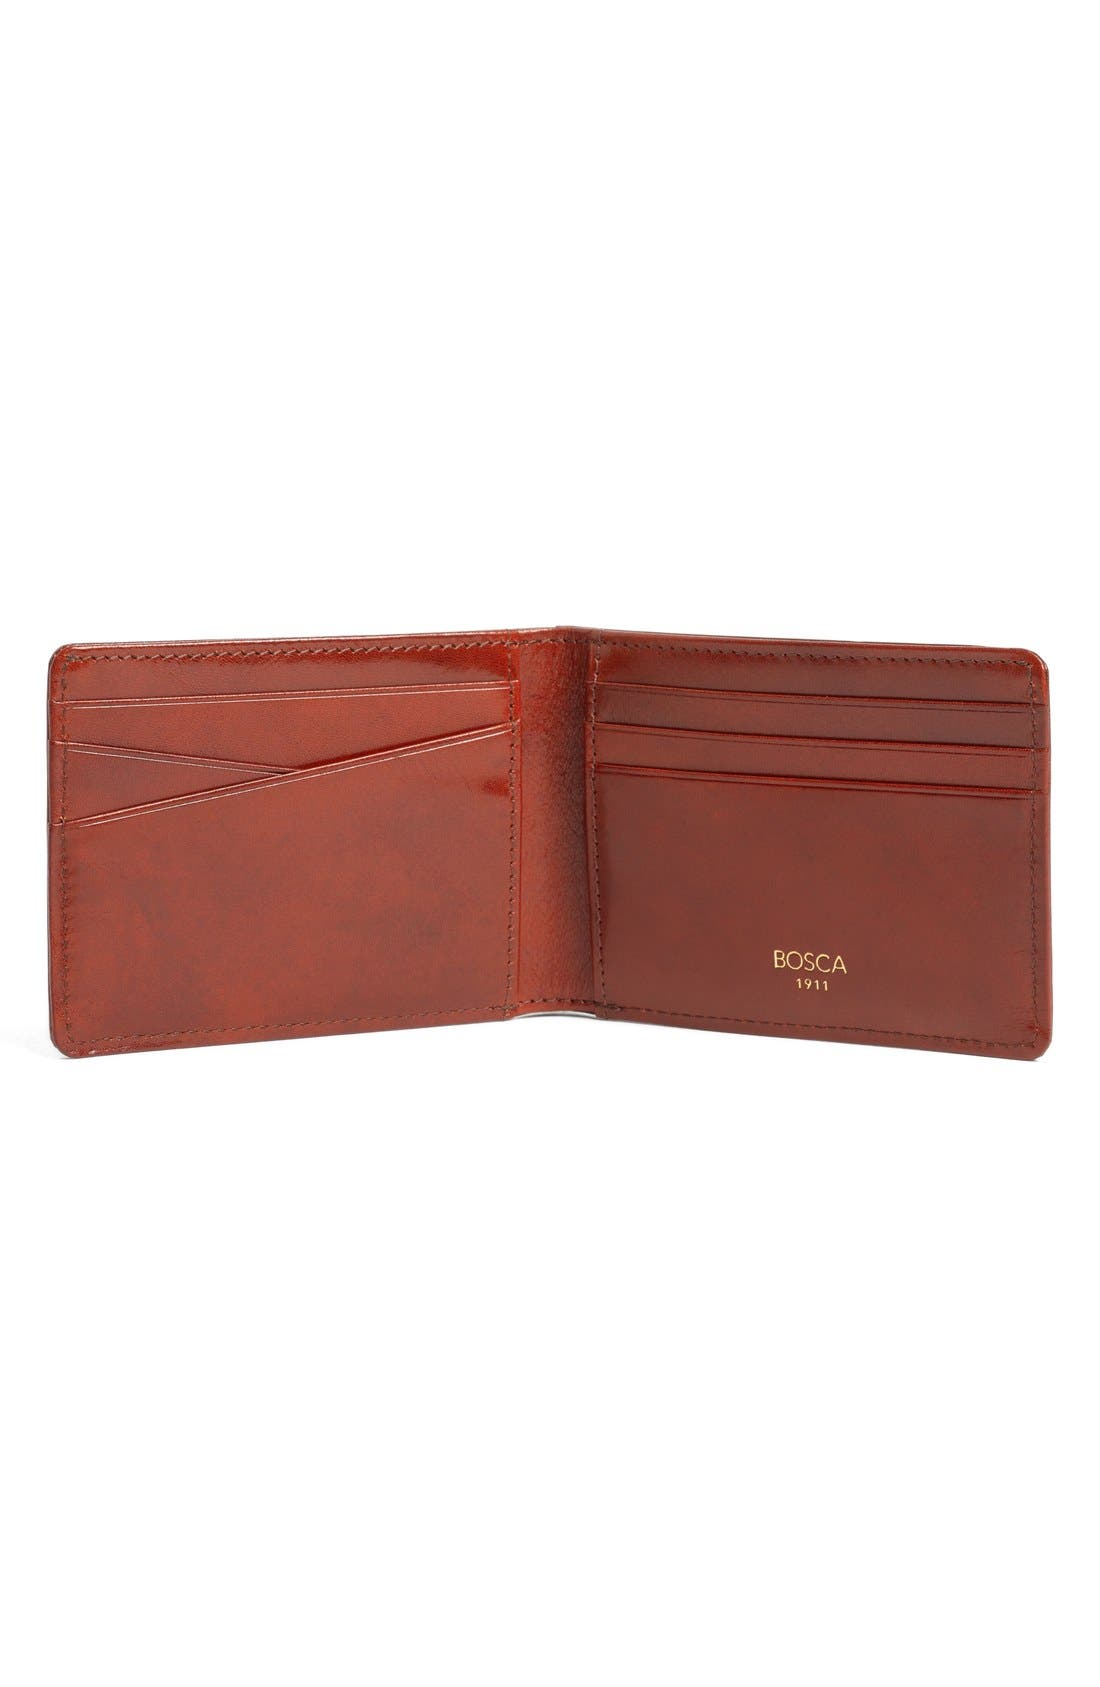 Small Bifold Wallet,                             Alternate thumbnail 7, color,